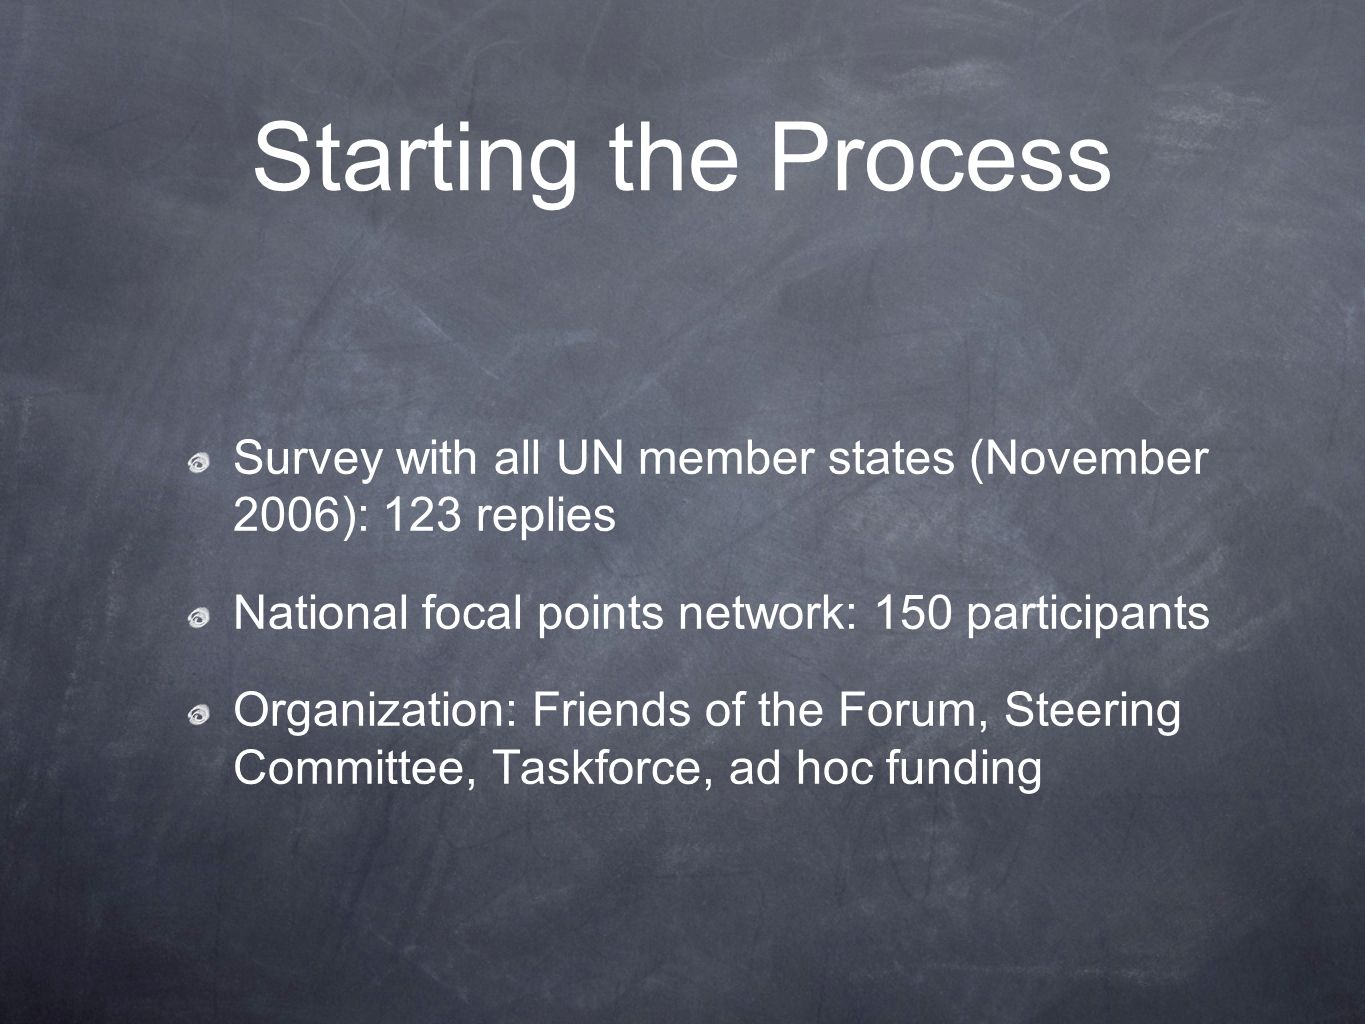 Starting the Process Survey with all UN member states (November 2006): 123 replies National focal points network: 150 participants Organization: Friends of the Forum, Steering Committee, Taskforce, ad hoc funding